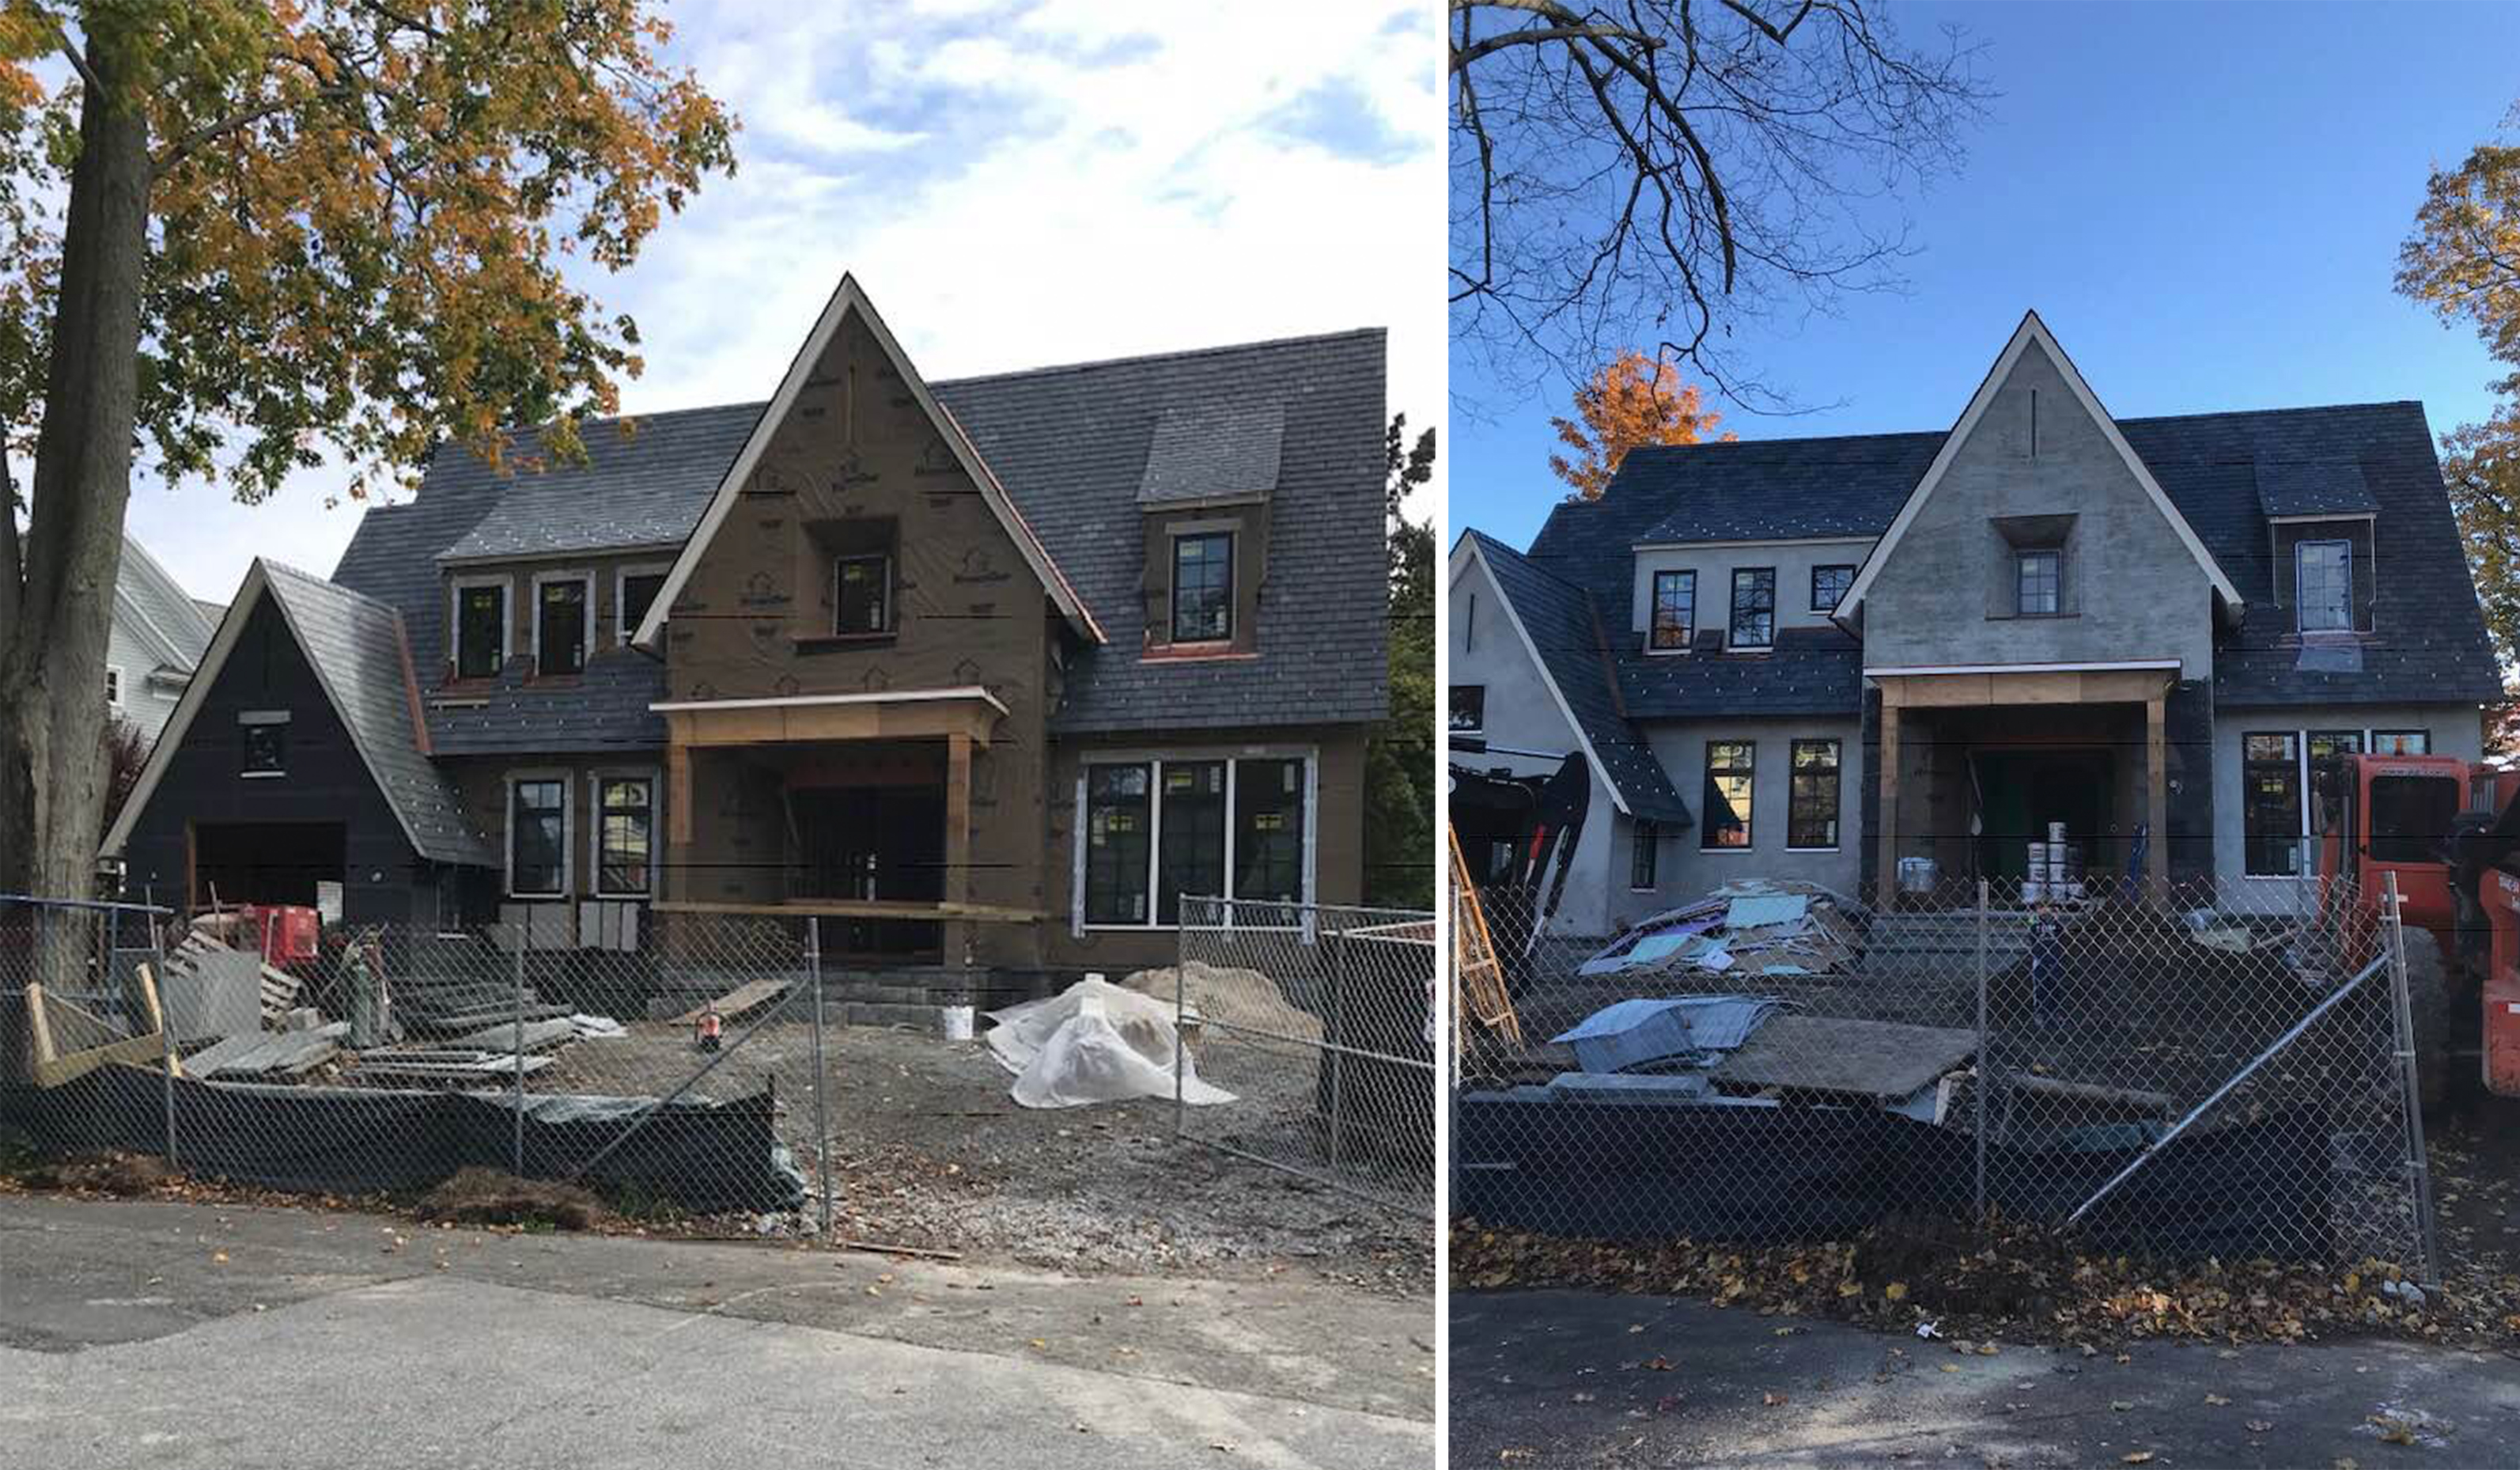 Larchmont stucco cottage construction progress on new custom home front elevation